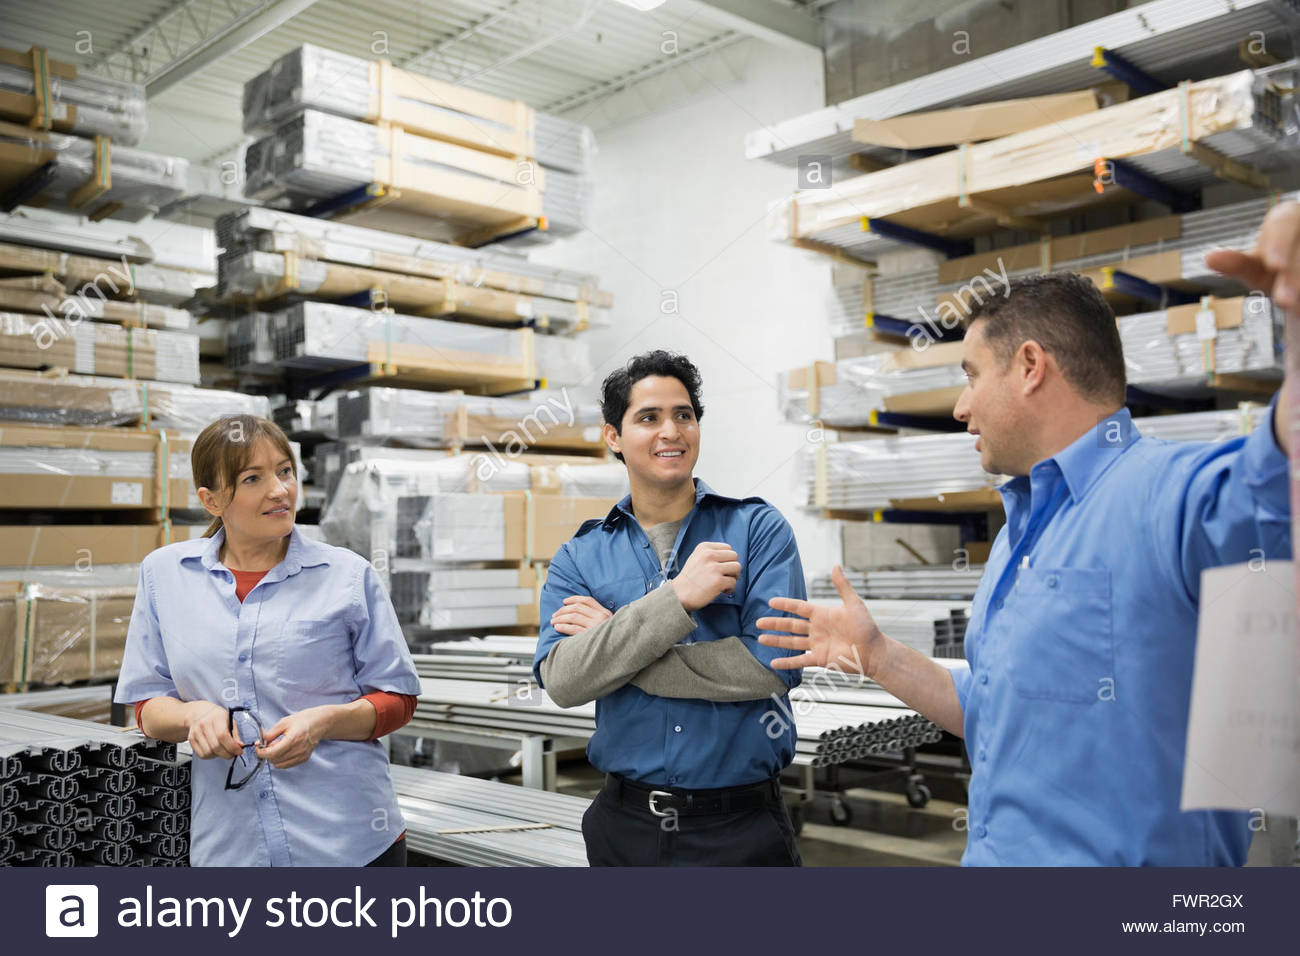 Worker explaining to colleagues in warehouse - Stock Image